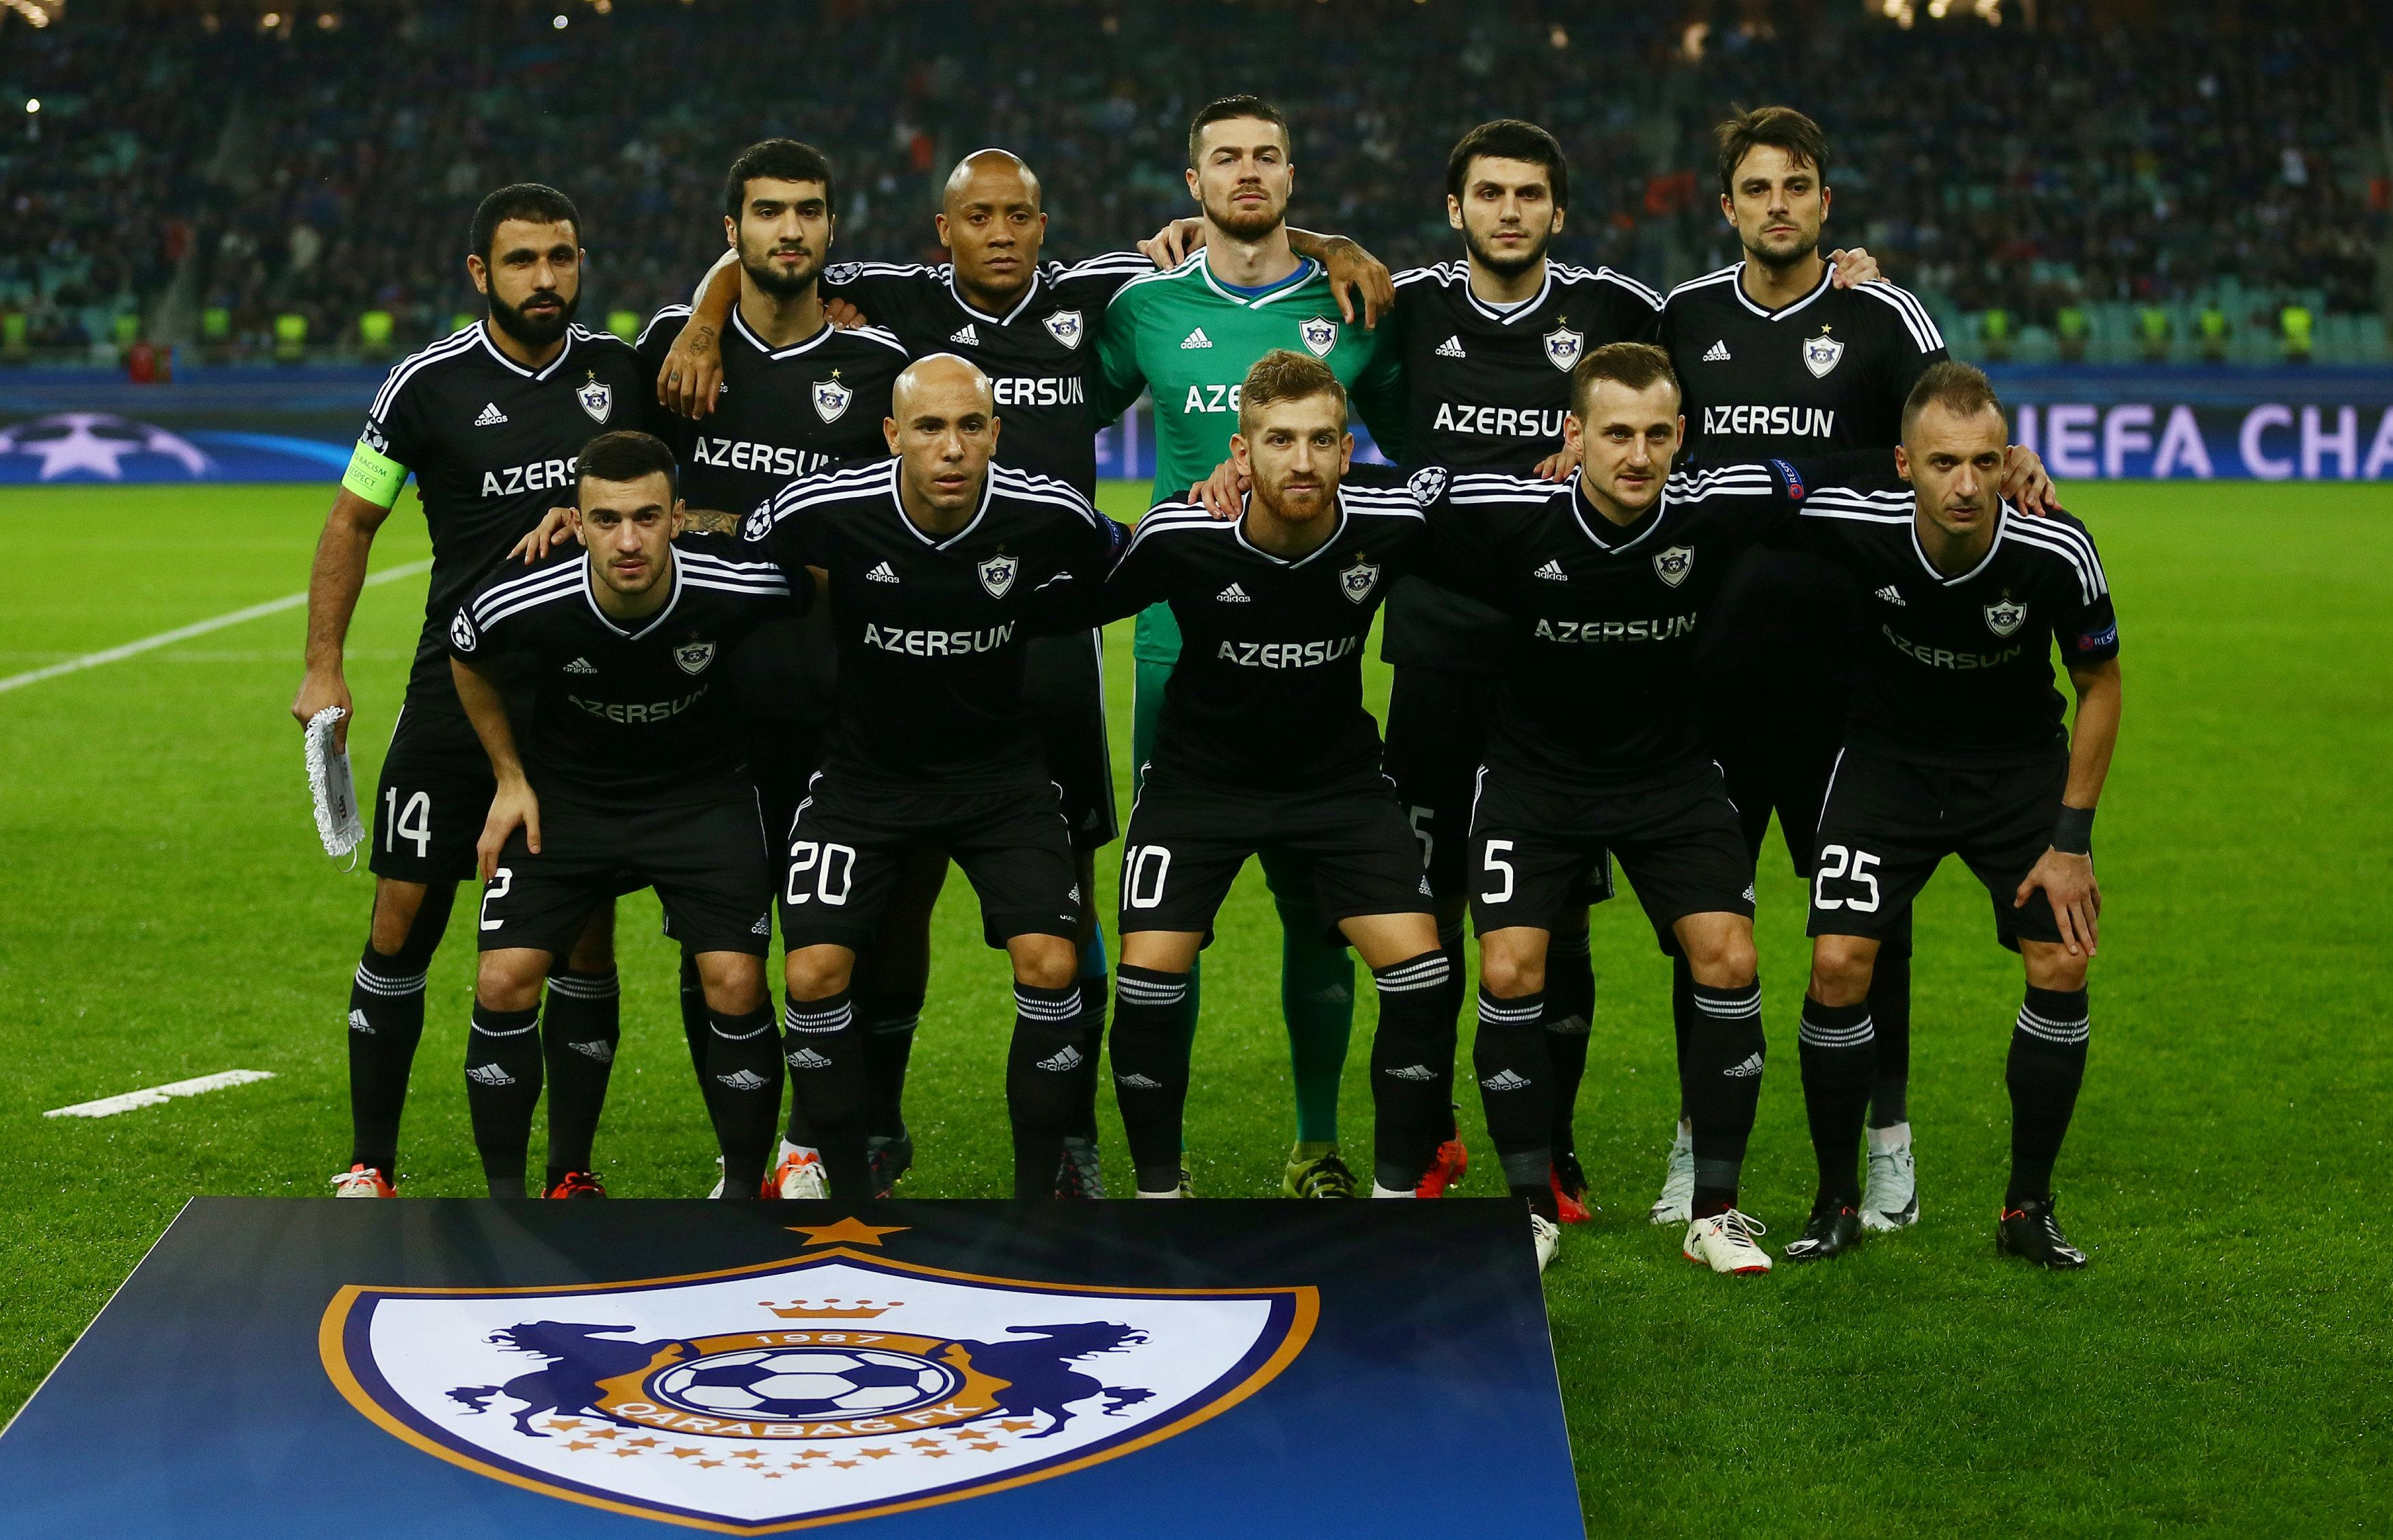 Qarabag faced Chelsea in last season's Champions League